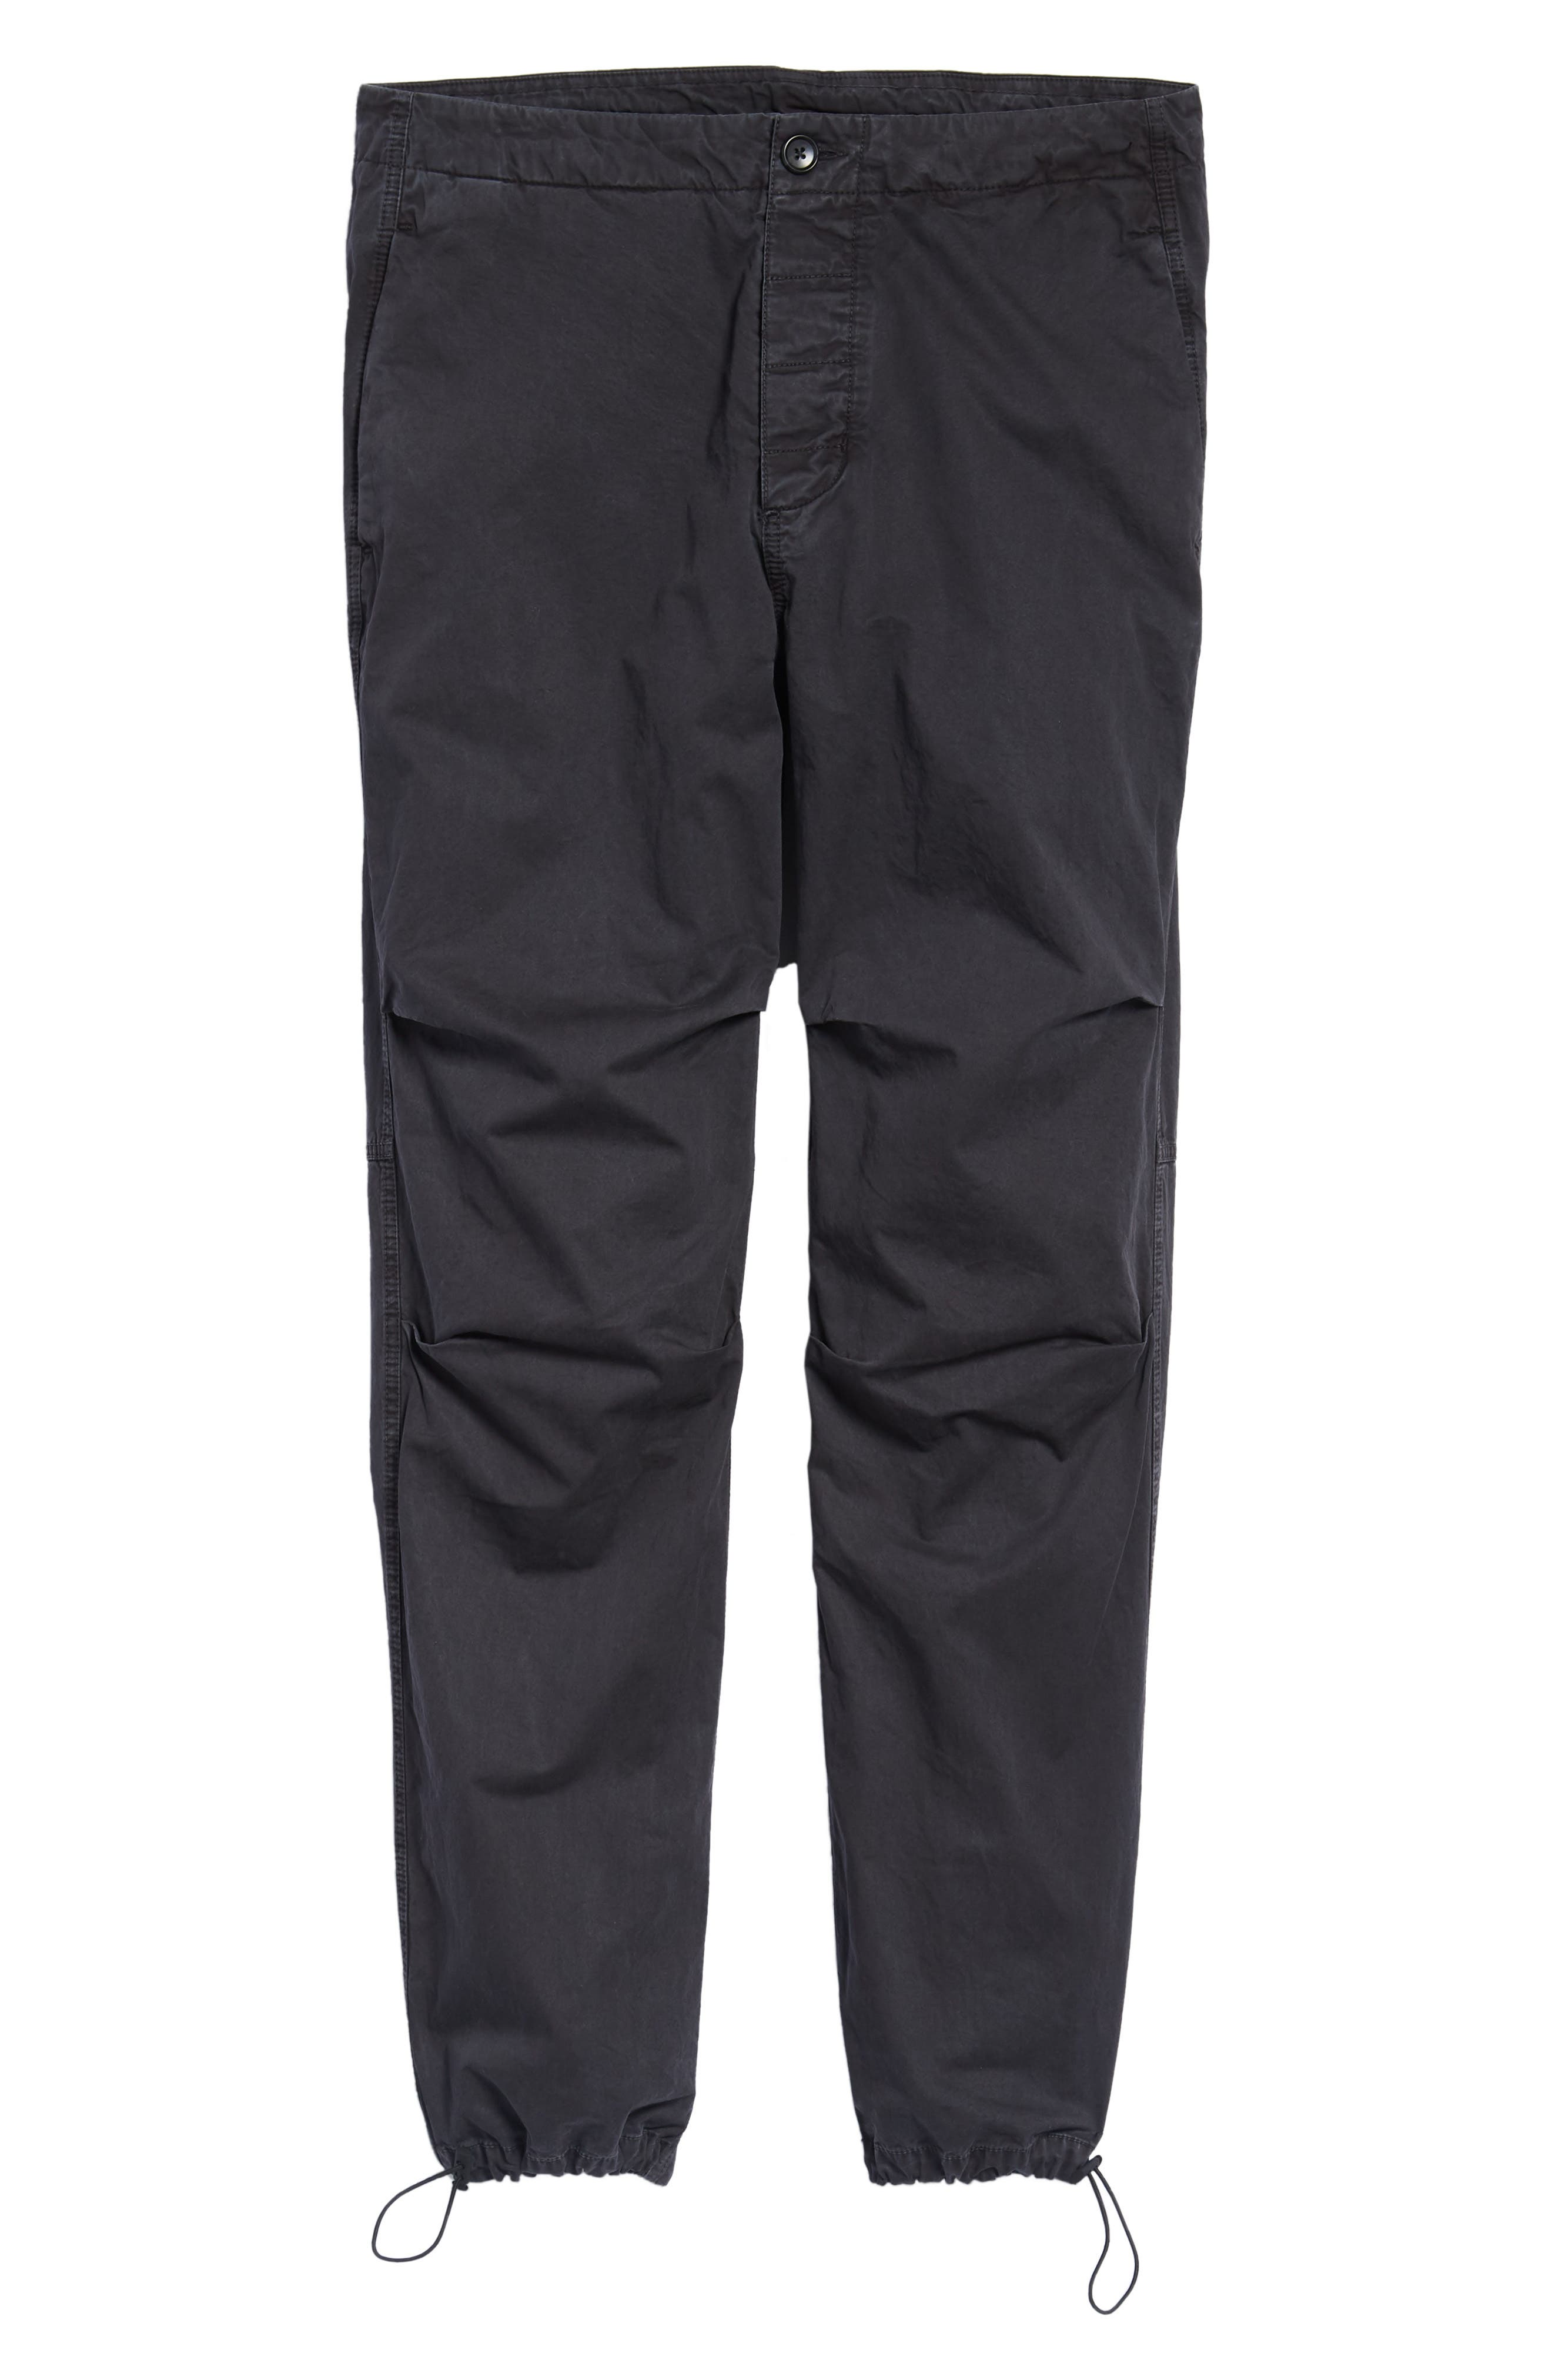 Relaxed Fit Cotton Twill Pants,                             Alternate thumbnail 6, color,                             Grey